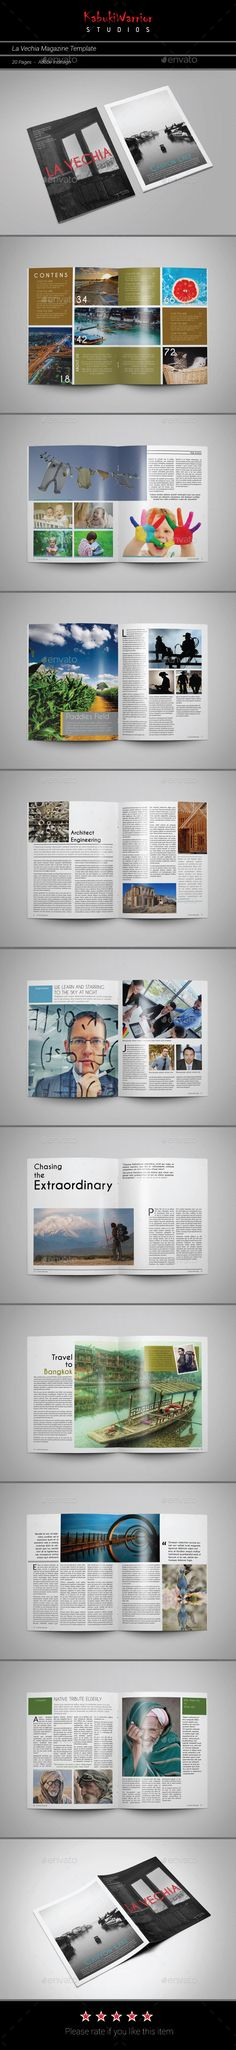 La Vechia Magazine Template Downloaded Descriptions:Indesign CC File Indesign CS4 File File info Basic Indesign HelpSpecifications